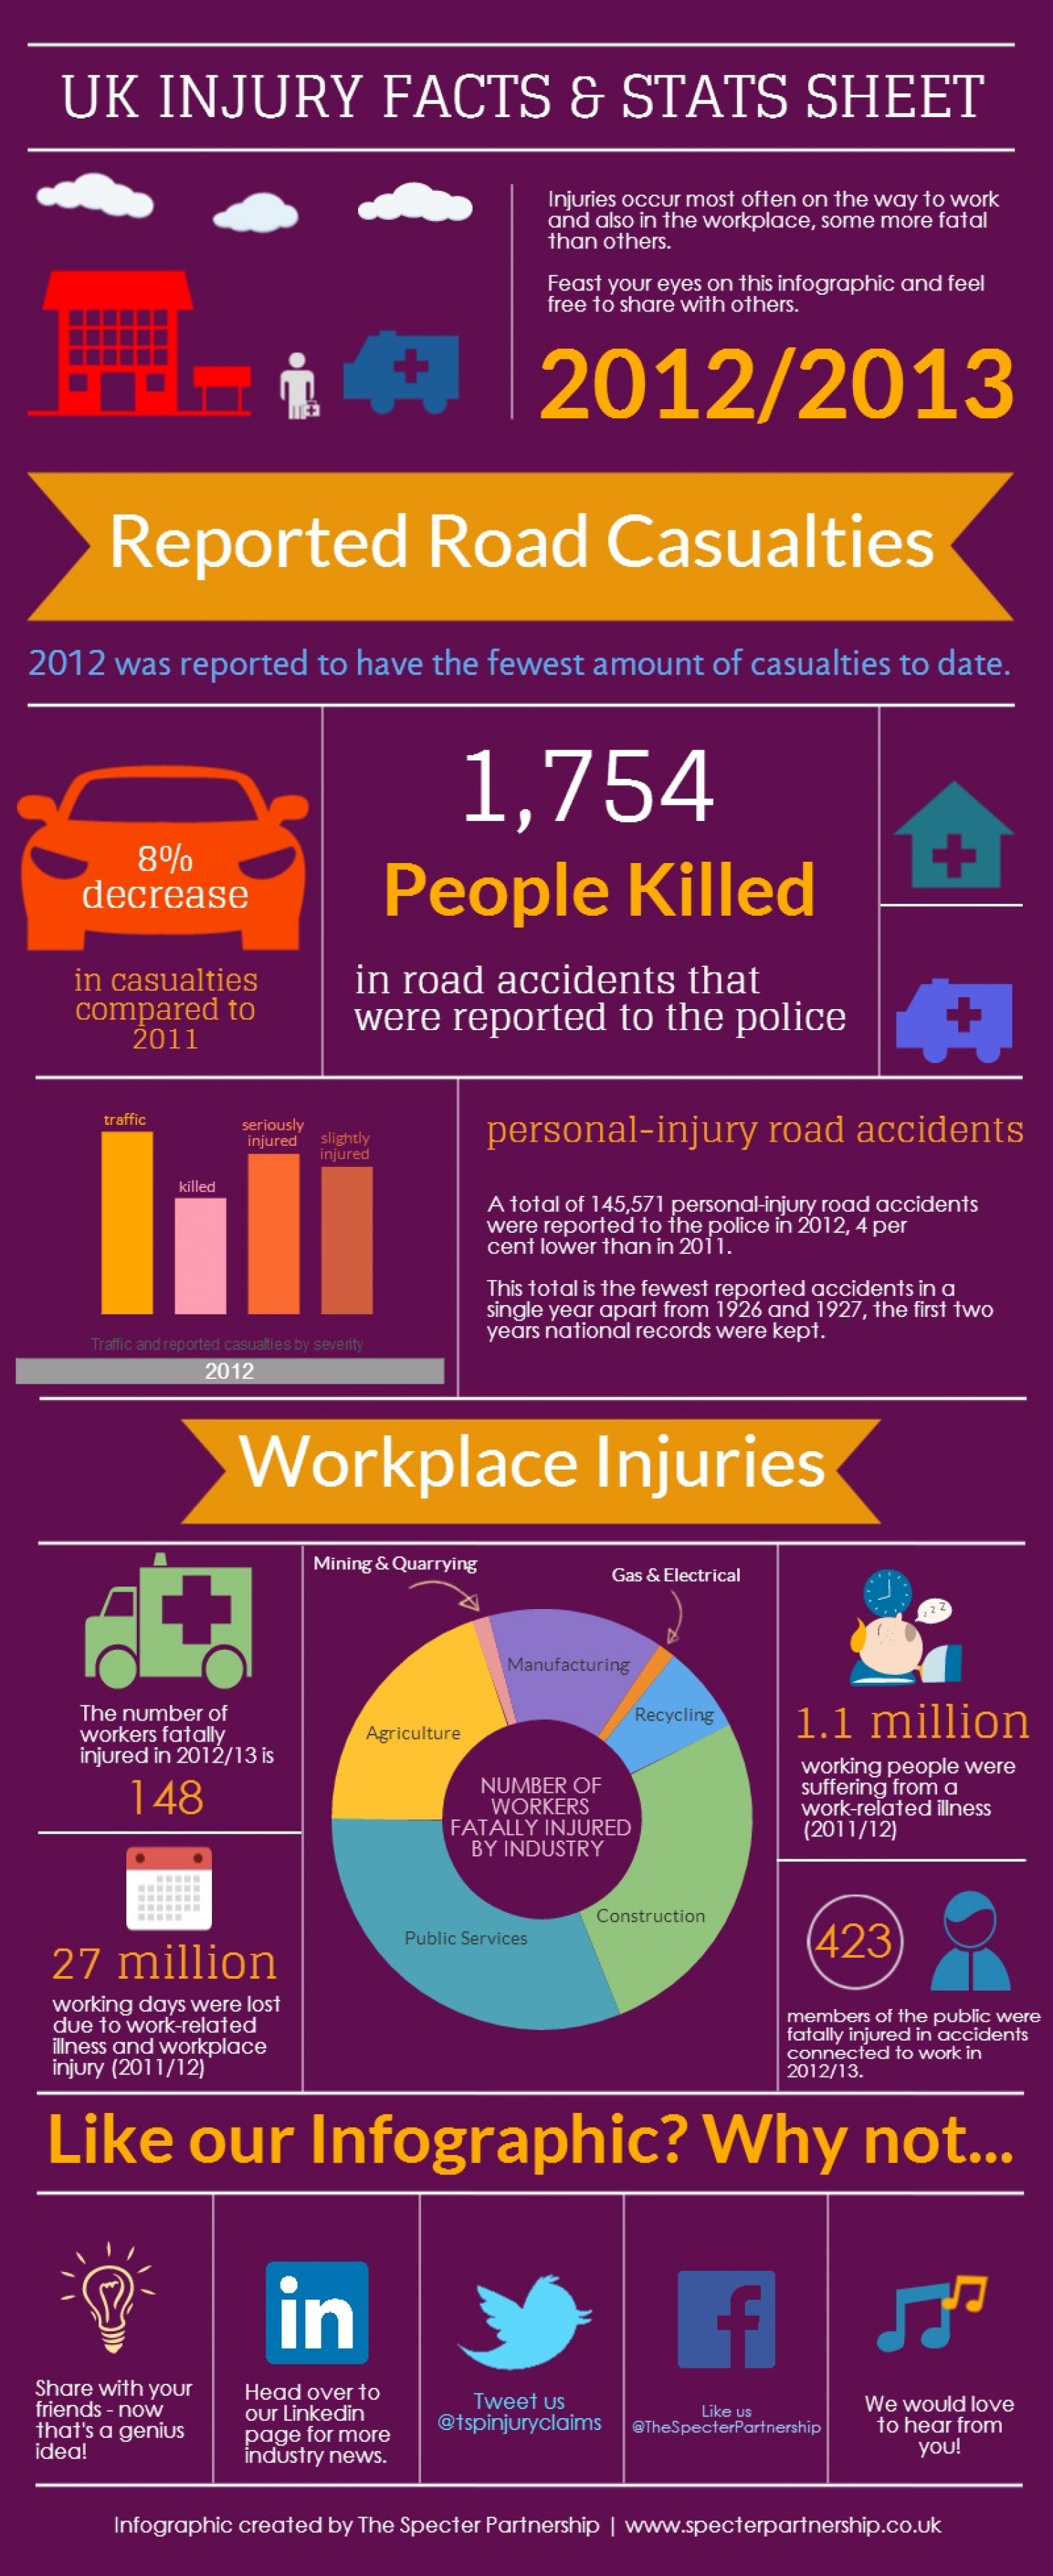 UK Injury Facts & Stats Sheet Infographic